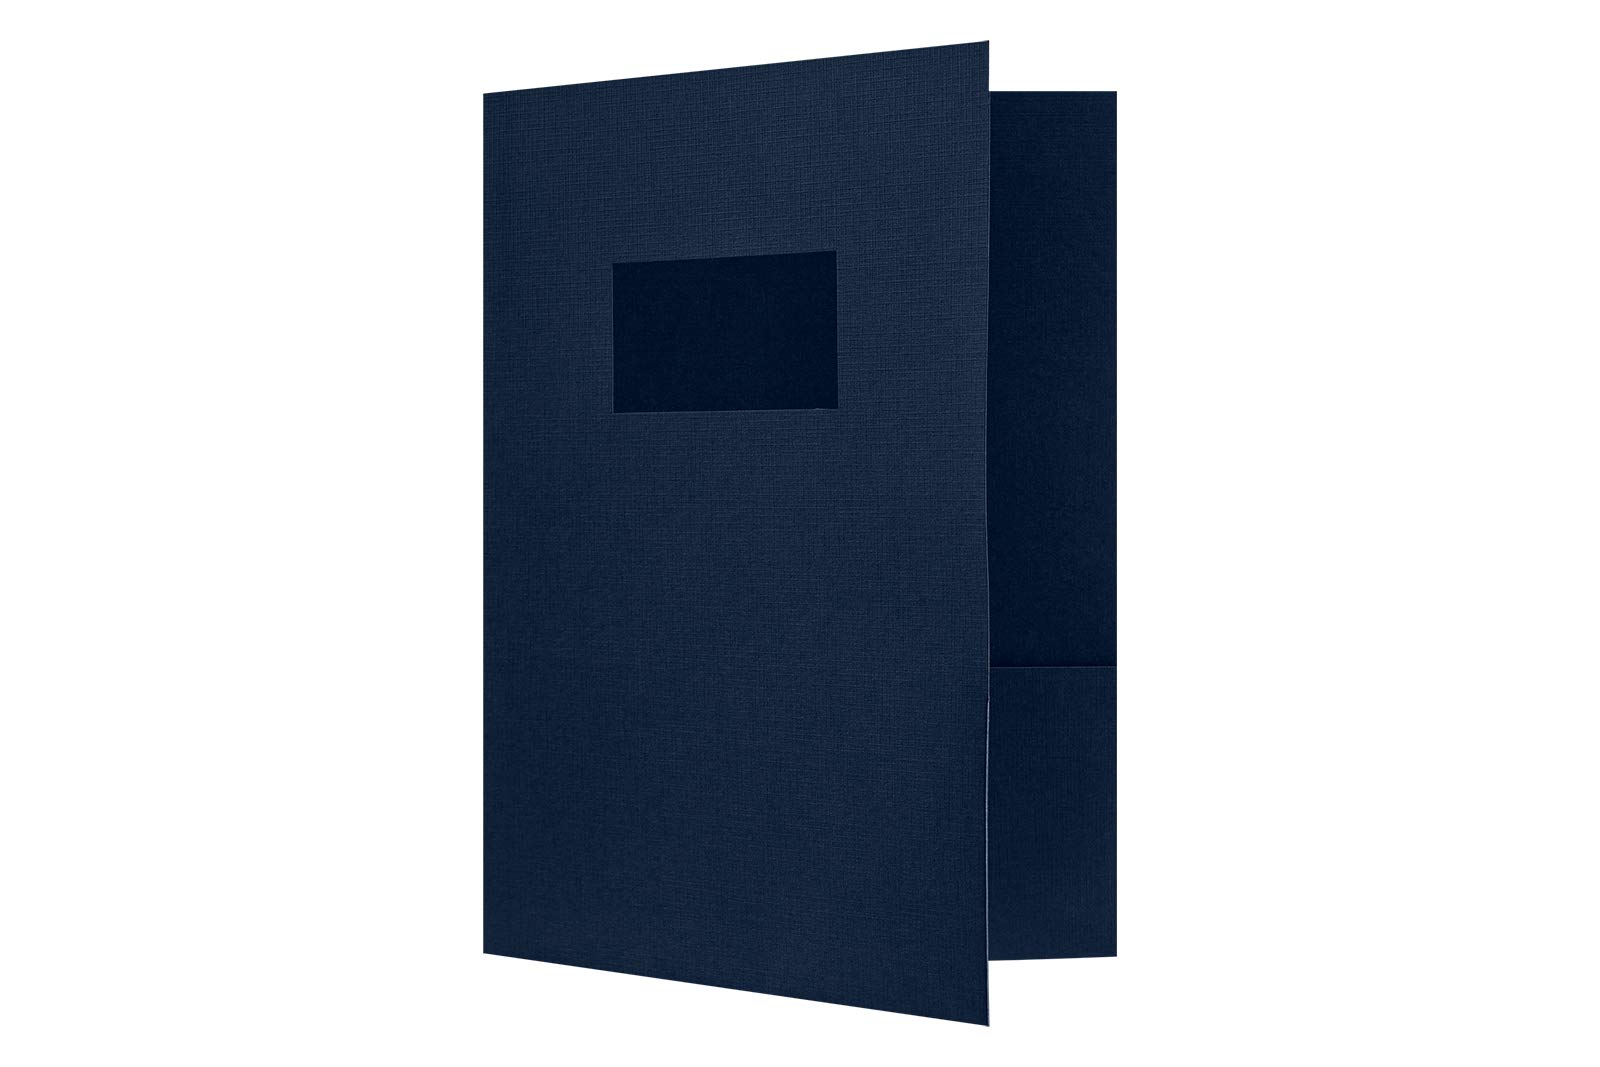 9 x 12 Presentation Folders - Standard Two Pocket w/Front Cover Window - Dark Blue Linen - Pack of 25 | Perfect for Tax Season, Brochures, Sales Materials and so Much More! | SF-102-DDBLU100-25 by Envelopes.com